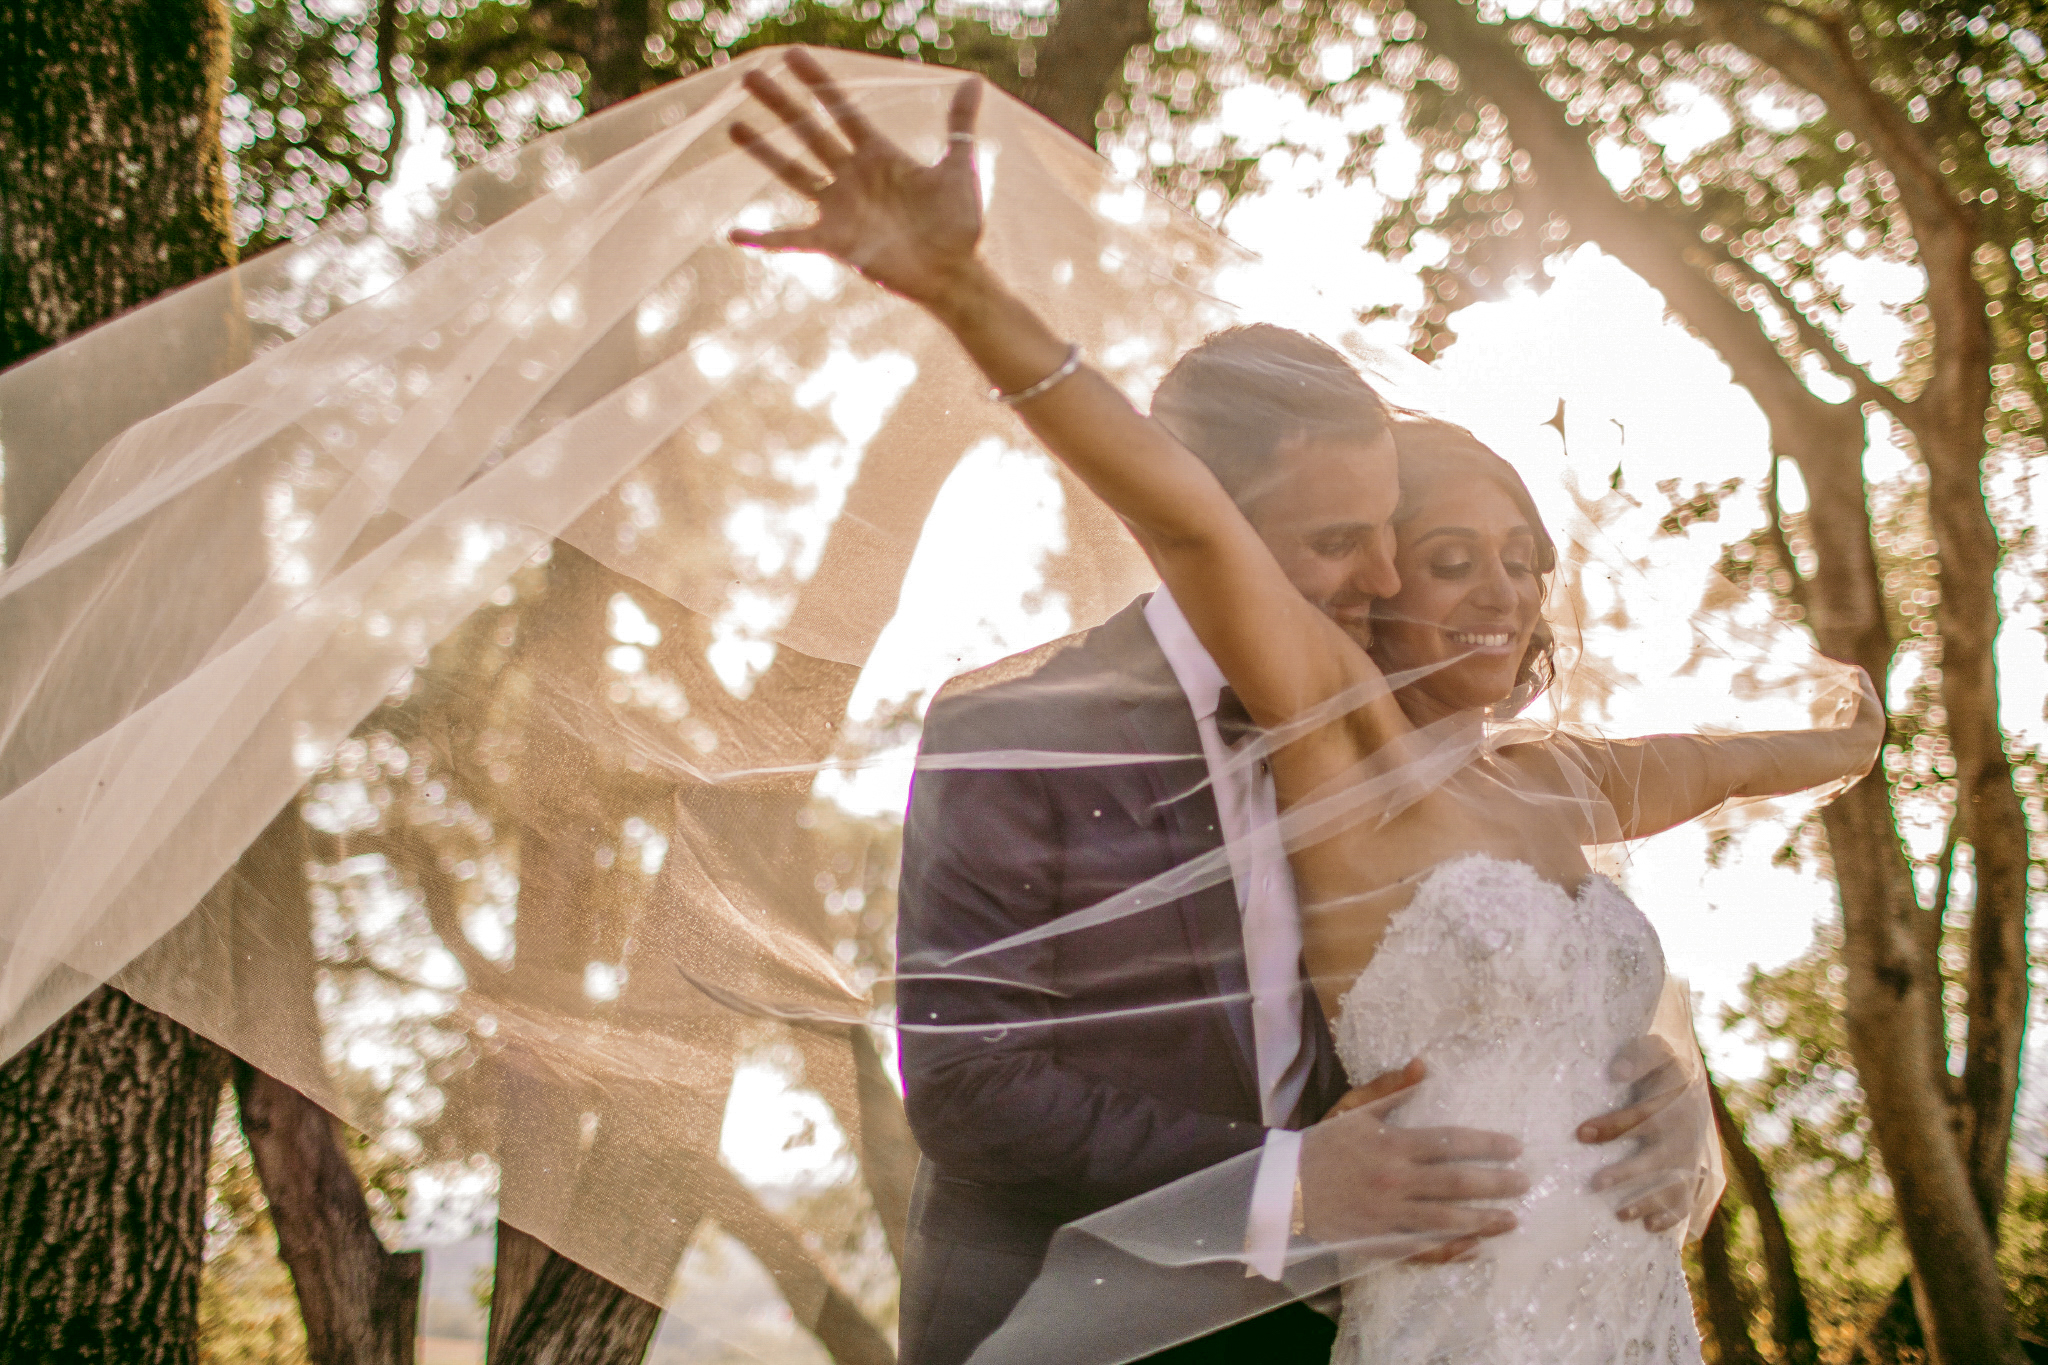 san diego wedding   photographer | groom holding bride from behind while under veil with bride's arms up wide open